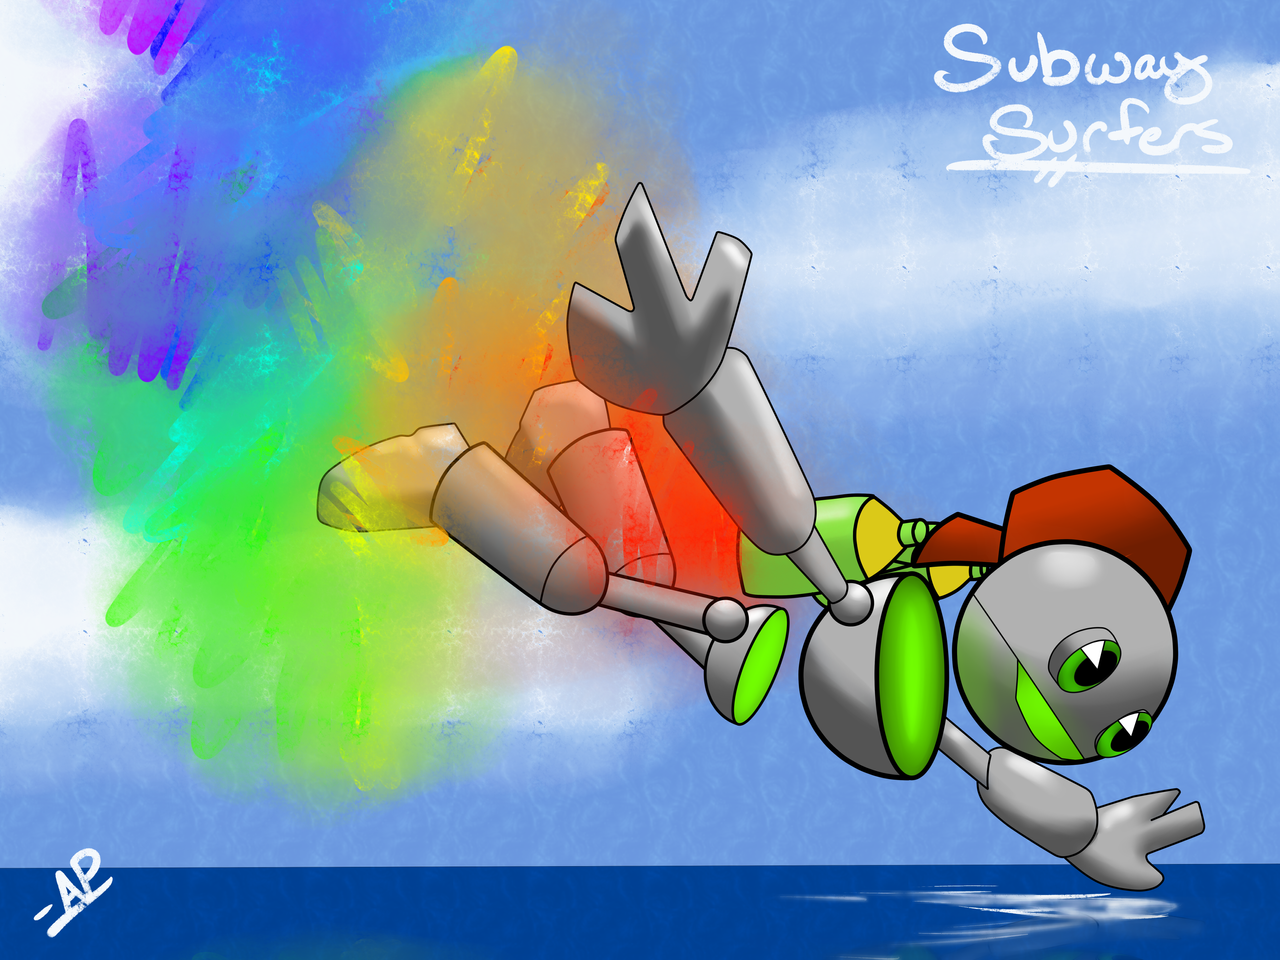 Subway Surfers - Tagbot by TonyFicticium